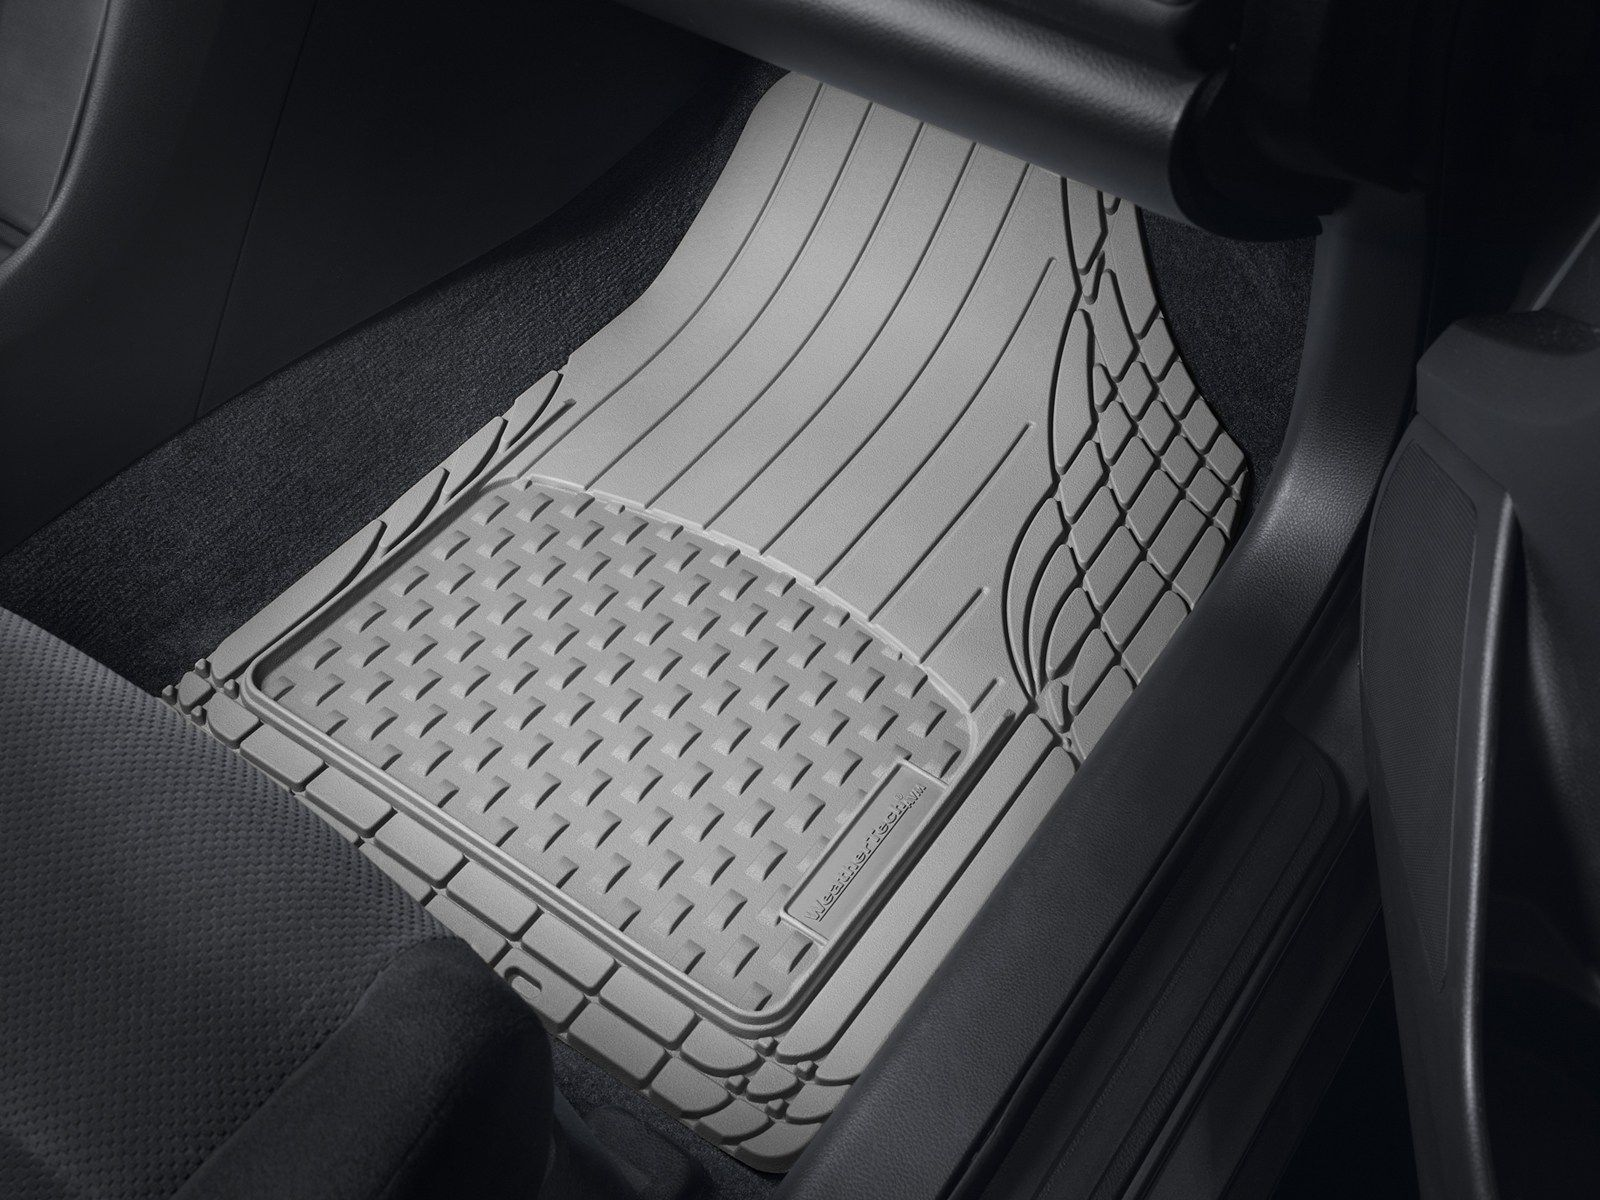 avm weathertech en universal mats semi ip tan floor cheap to trim fit